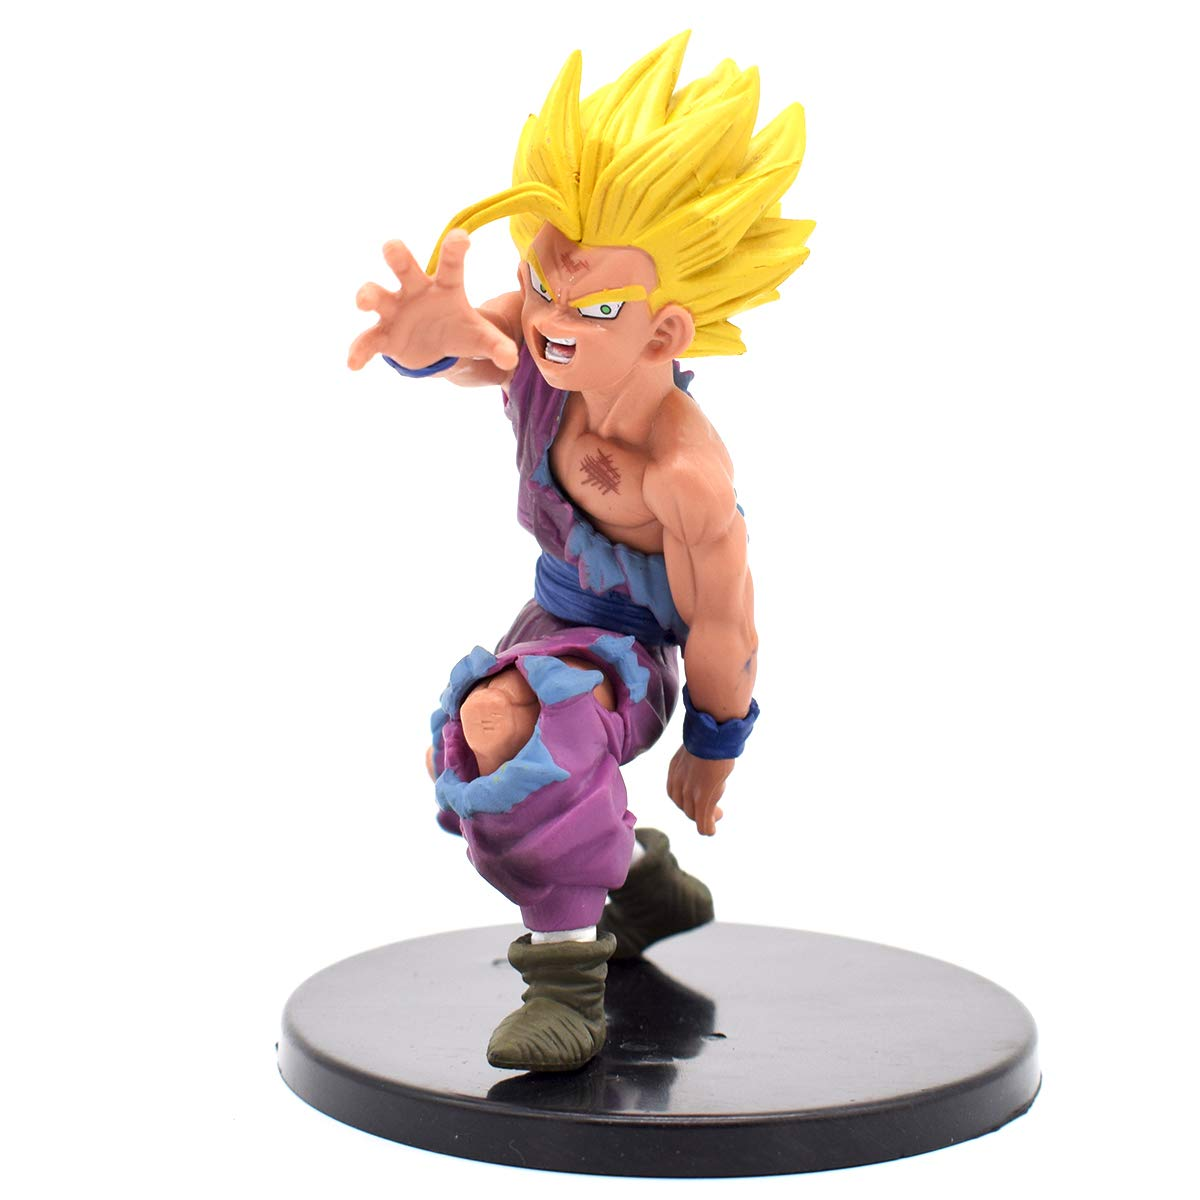 Anime Figures- Action Figures Are Mostly Loved By   Kids